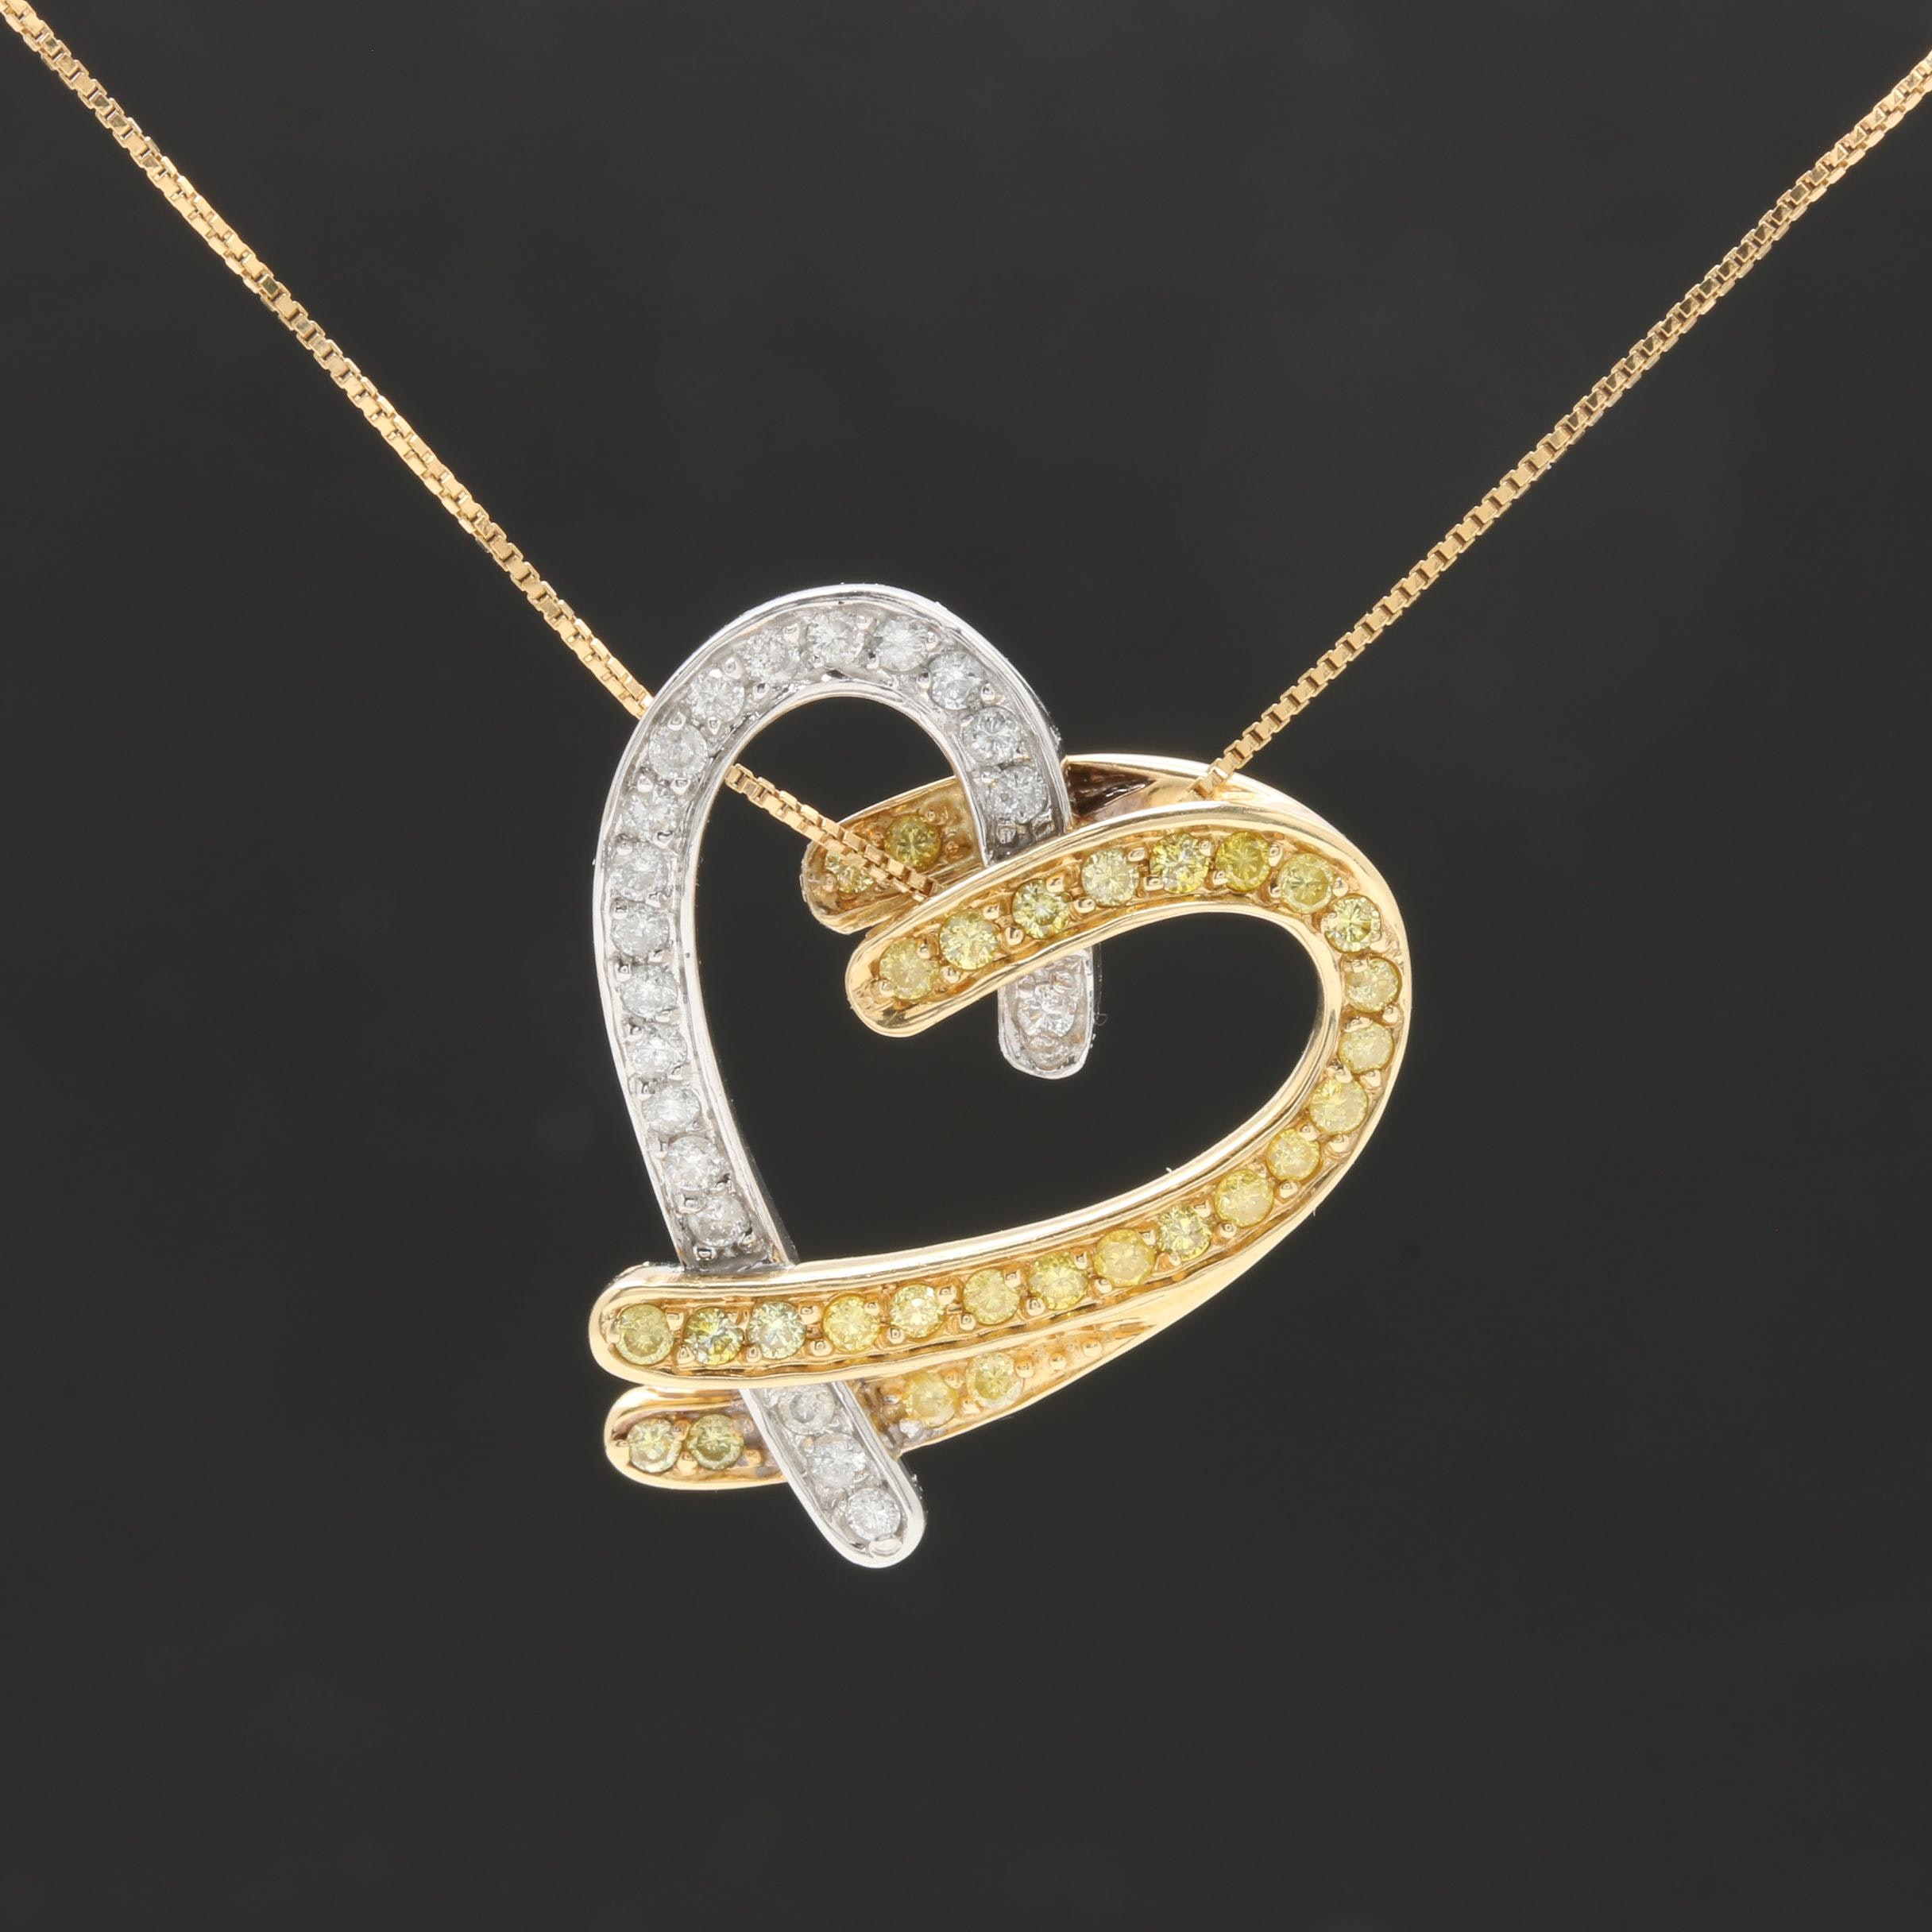 14K Yellow Gold Diamond Heart Pendant Necklace with 14K White Gold Accents